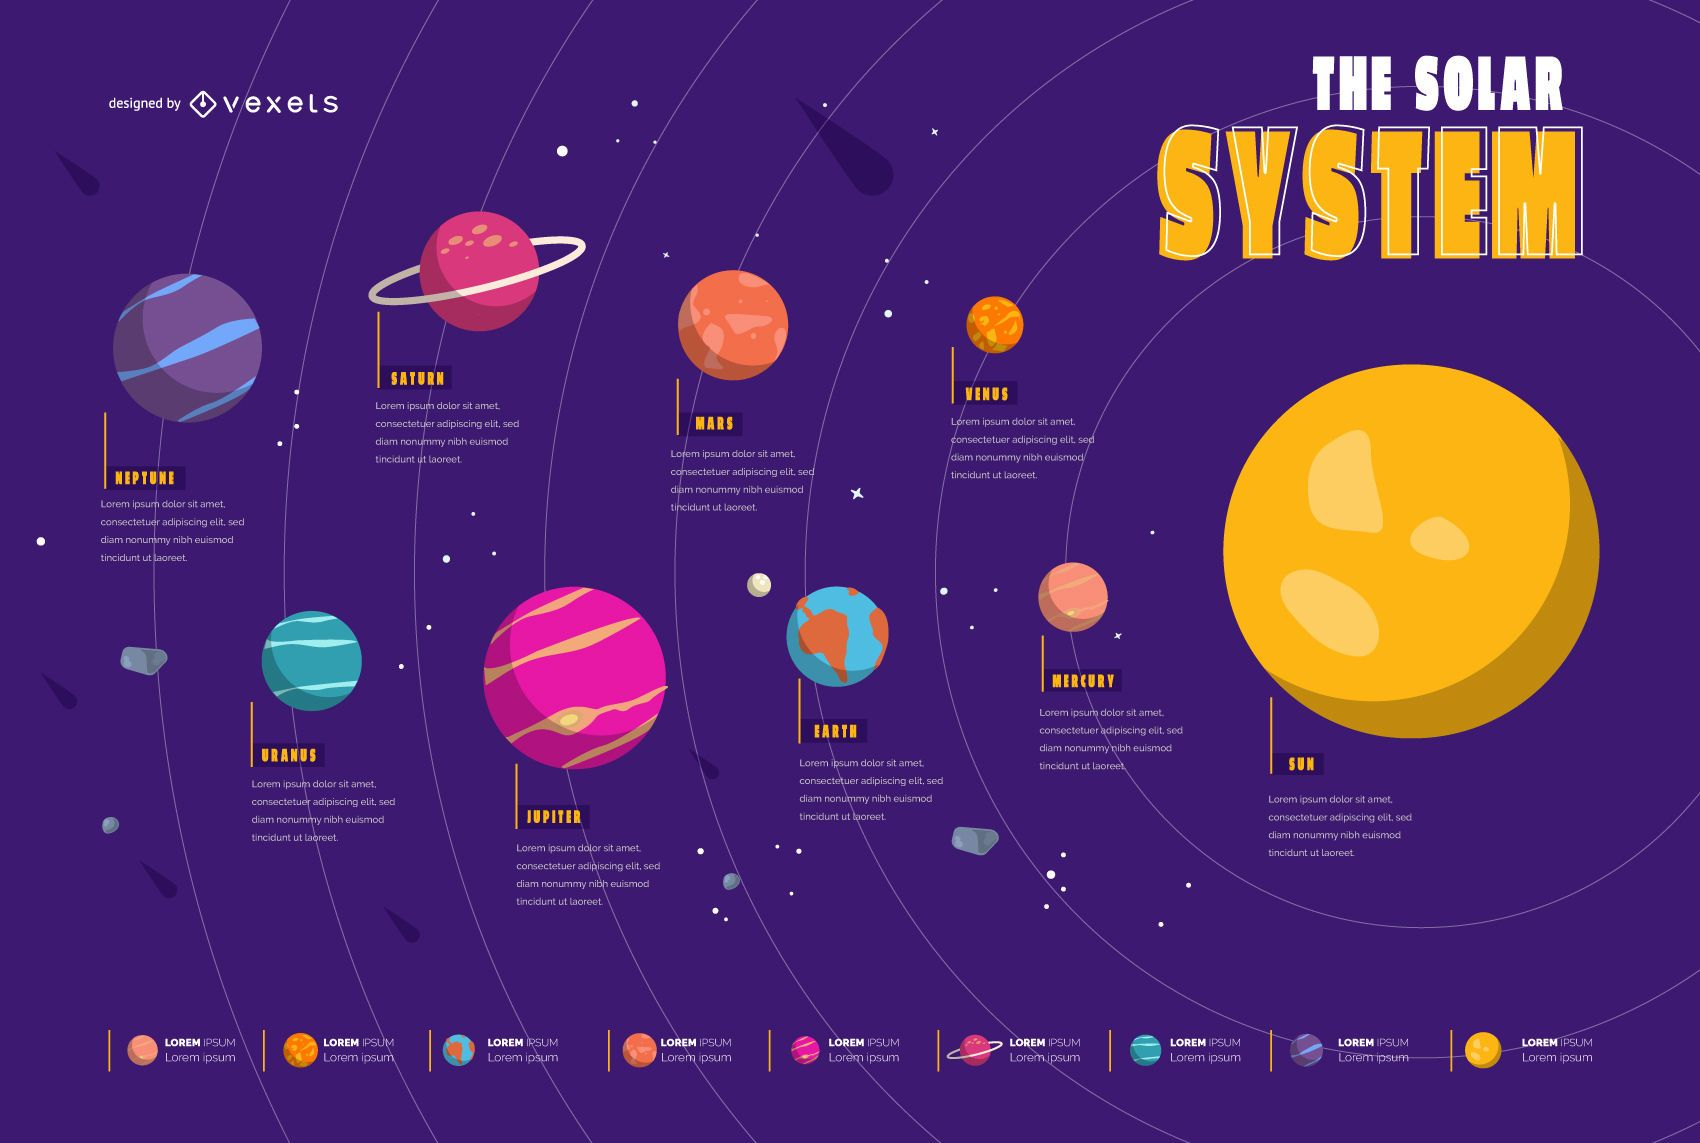 The Solar System Illustrated Infographic